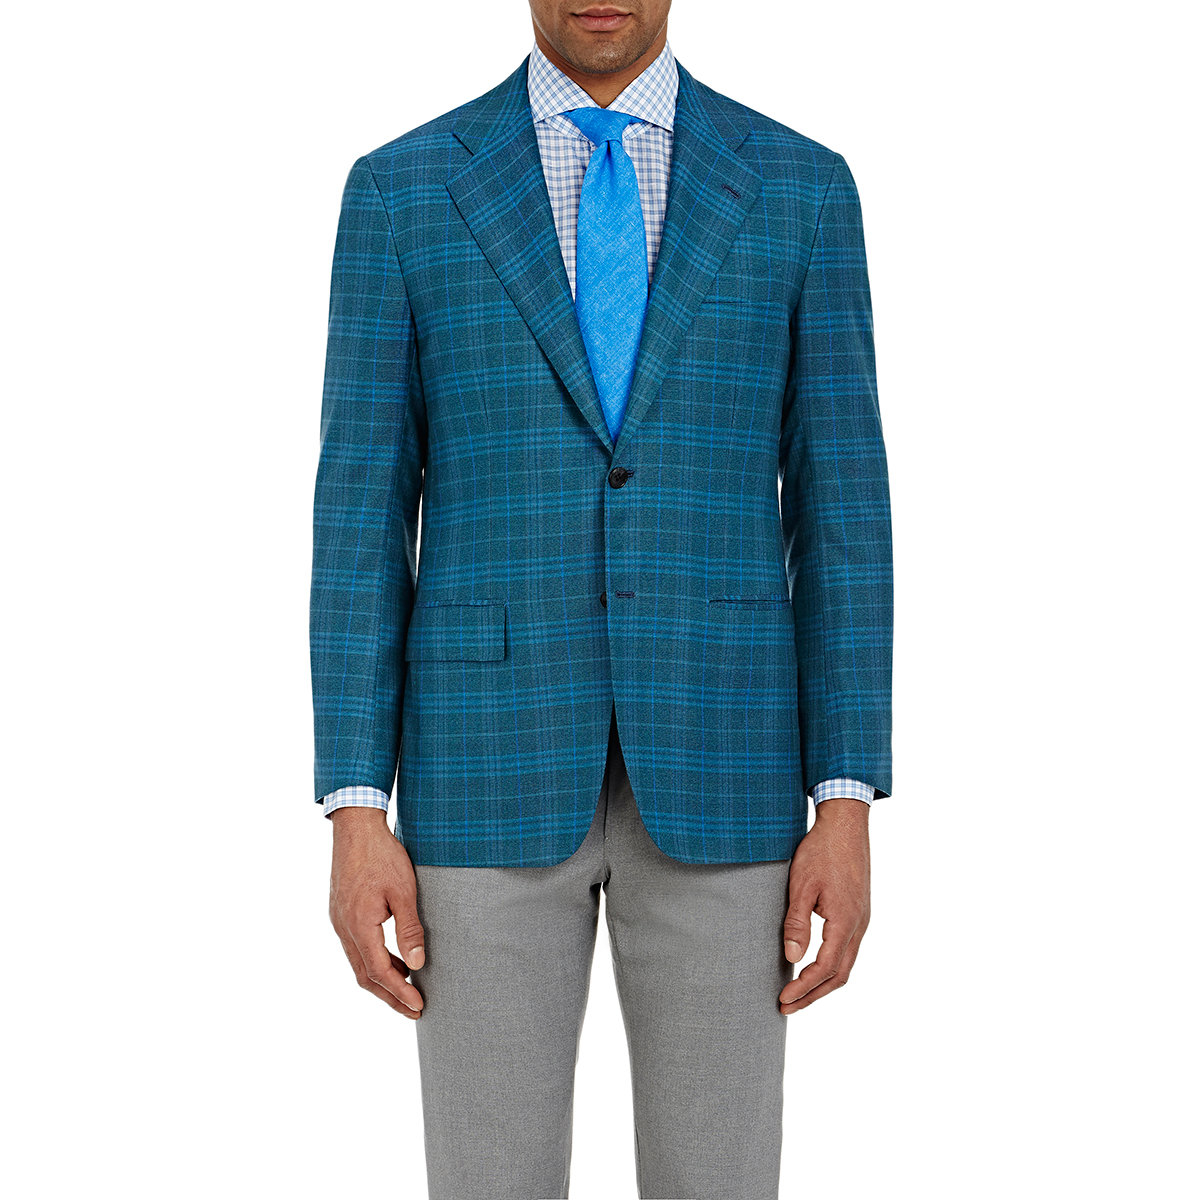 Kiton Men's Pique Two-button Jacket in Blue for Men